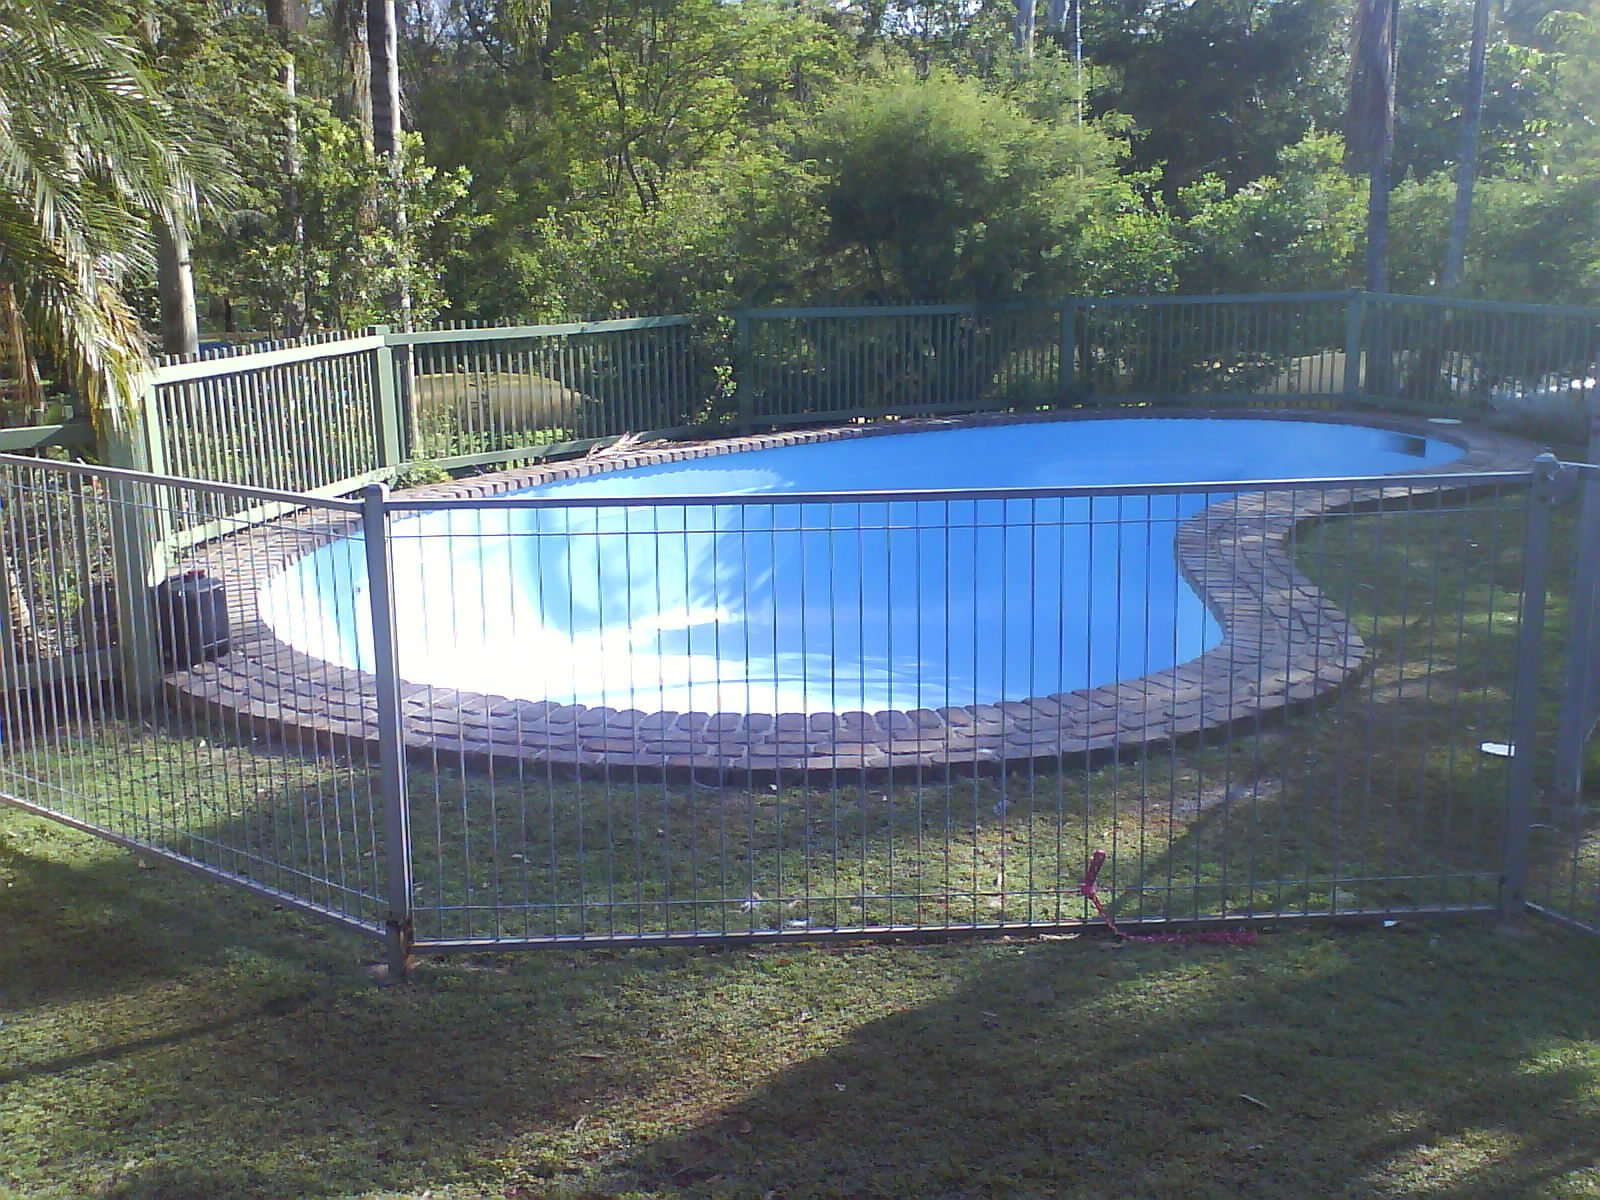 View of the pool after restoration work